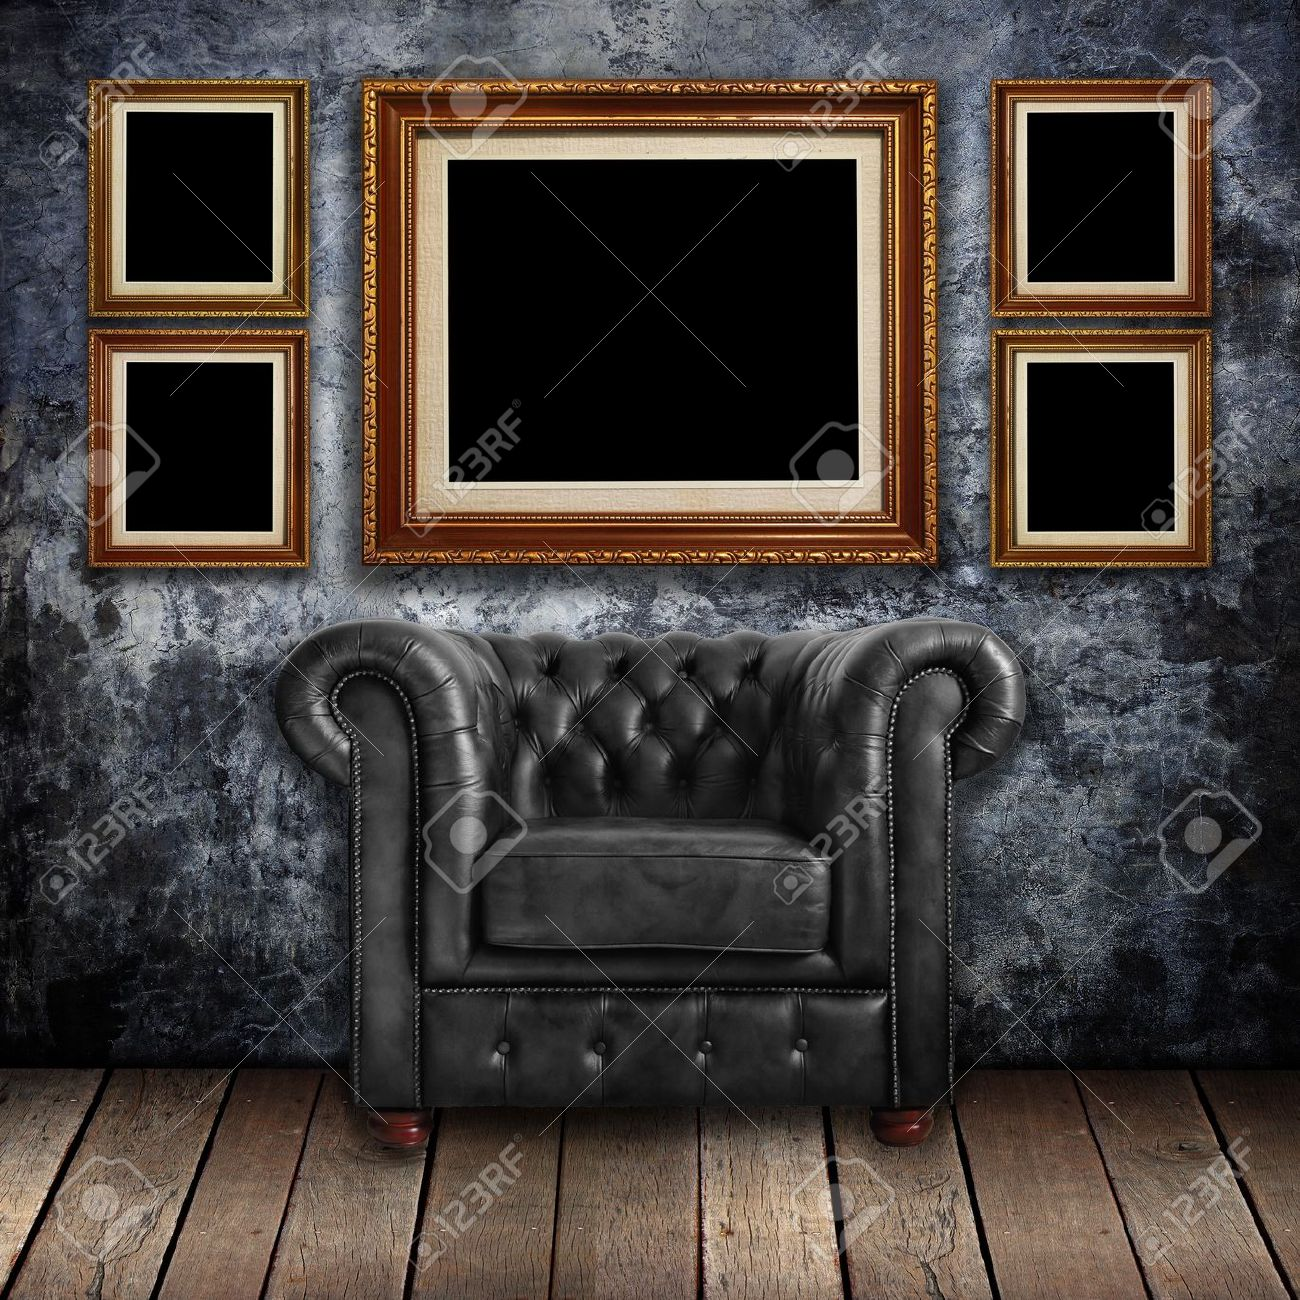 edcd00ca026 Grungy wall with Classic Brown leather armchair and gold frames background  Stock Photo - 12801664